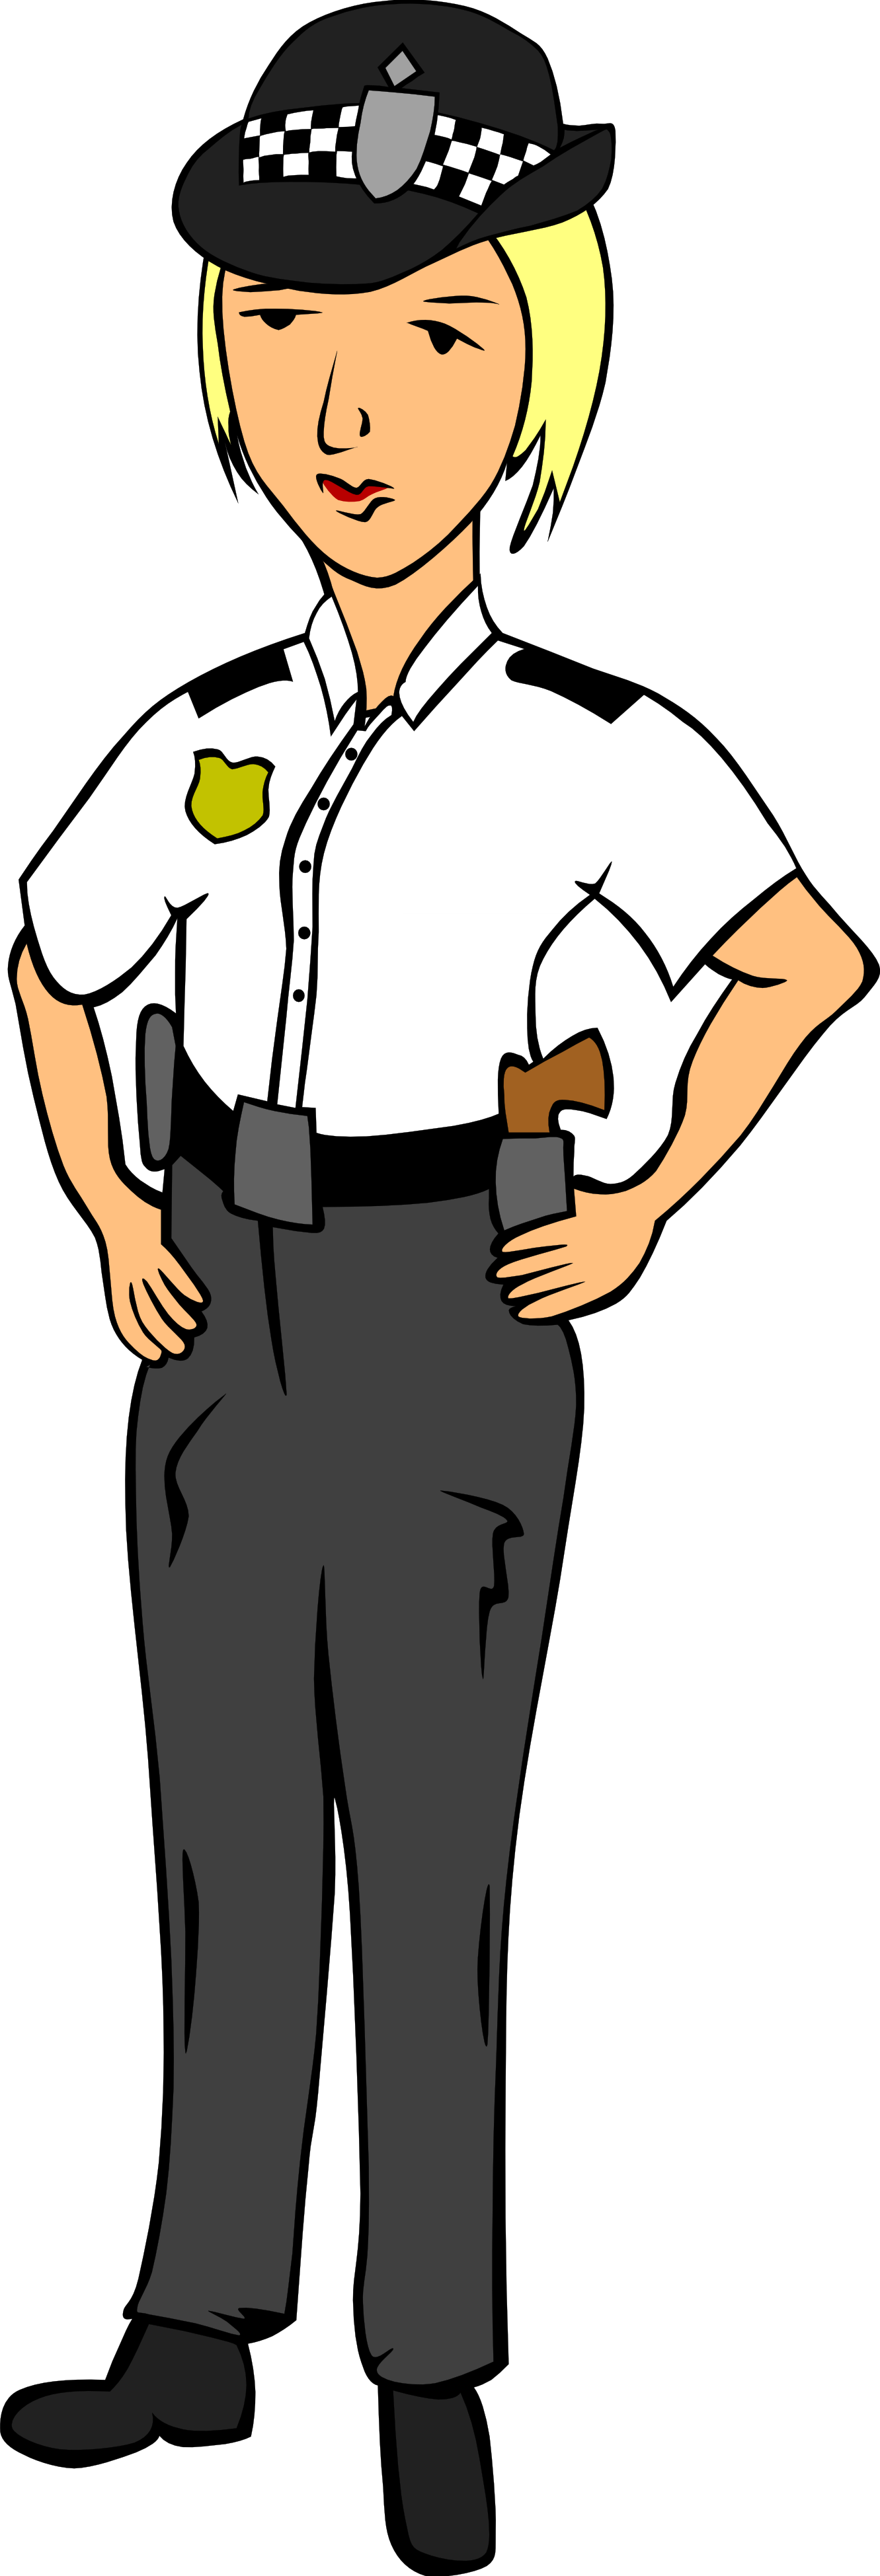 School security guard clipart picture freeuse library Police Officer | Clipart Panda - Free Clipart Images picture freeuse library